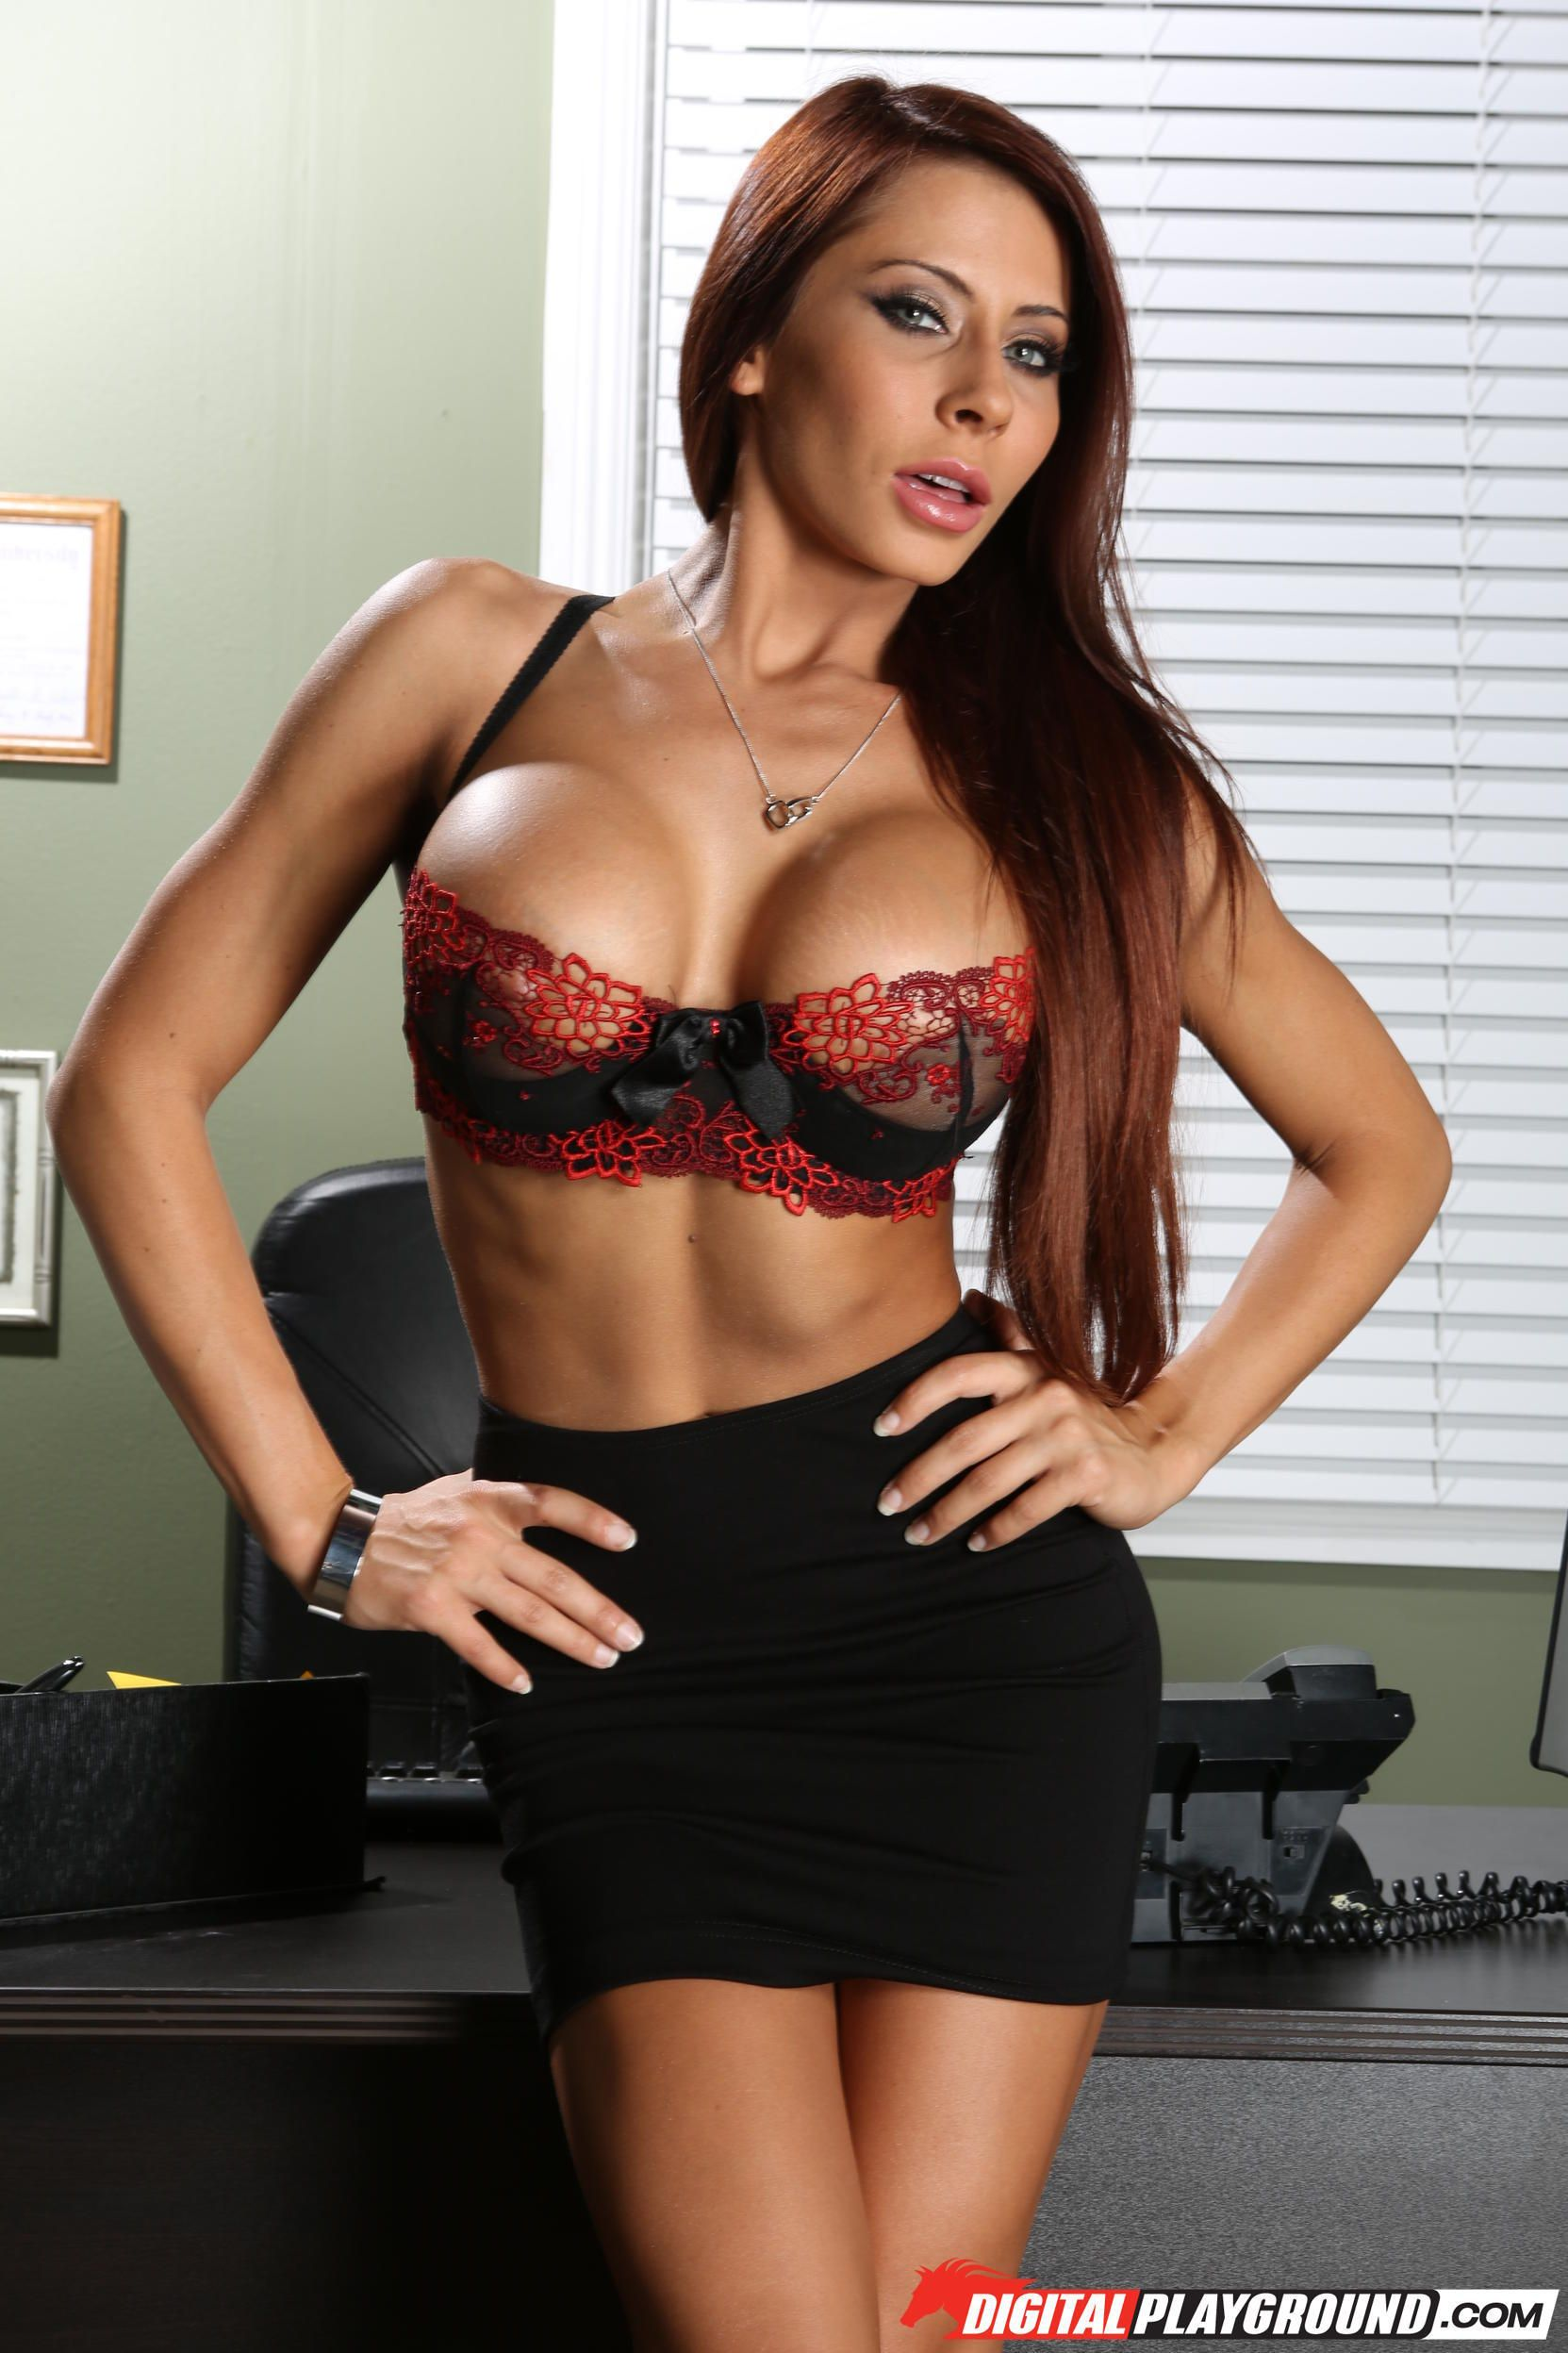 Madison ivy porno hd